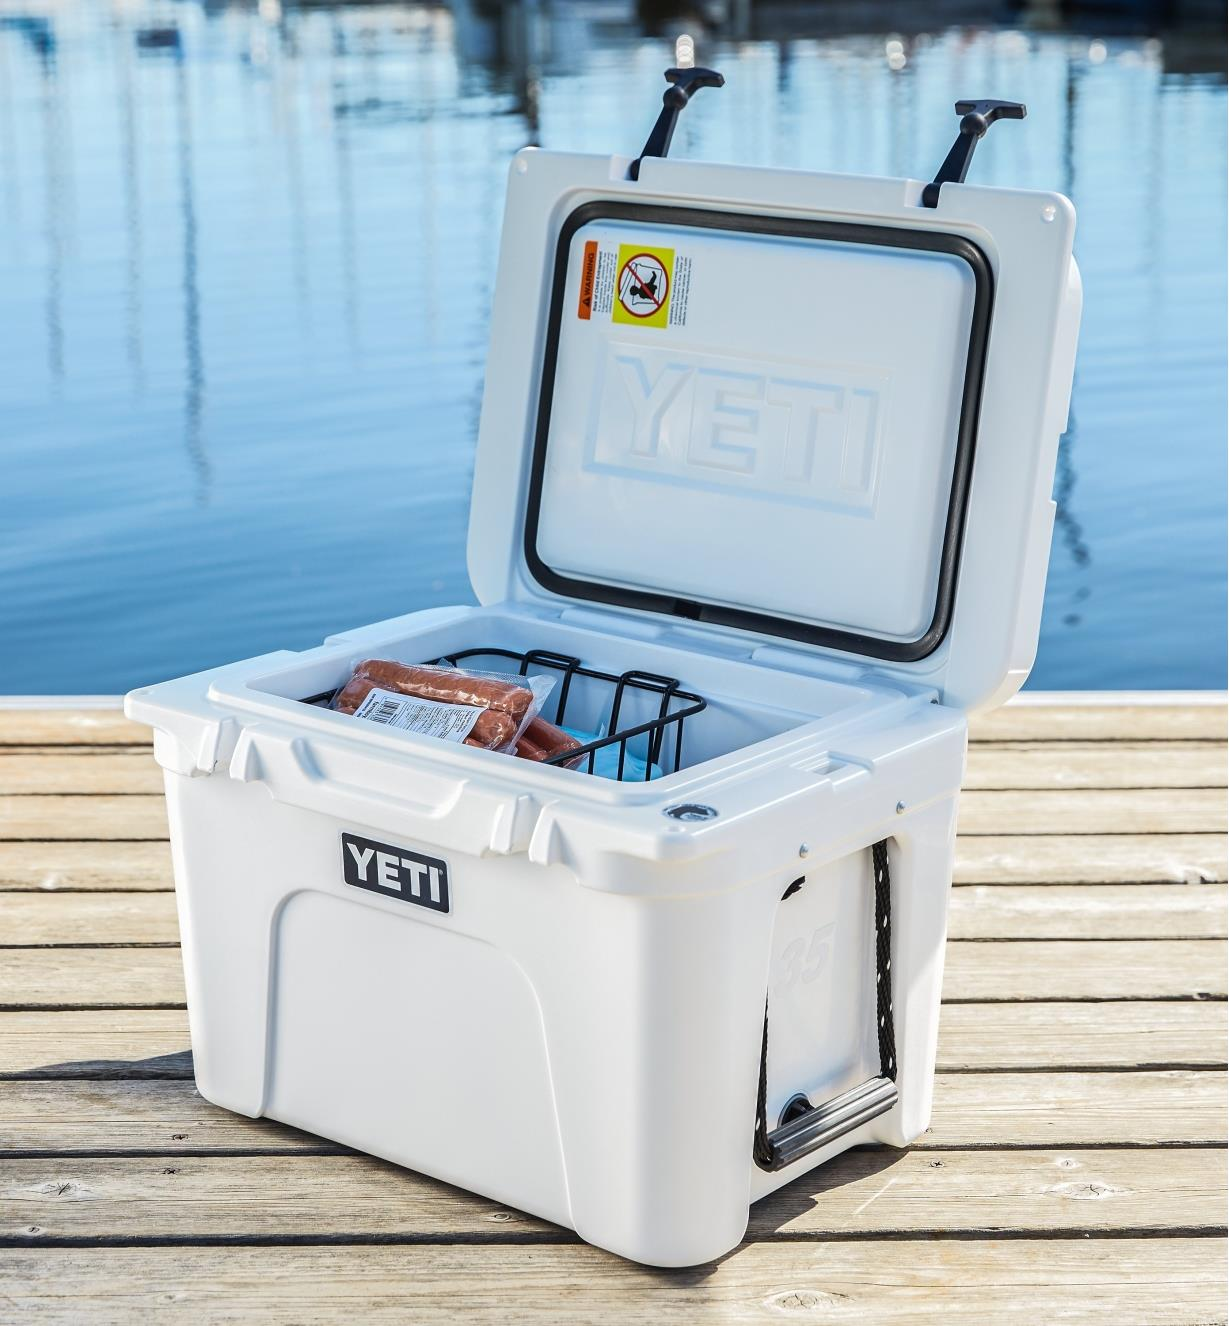 Yeti Tundra Hard-Sided 35 Cooler sitting on a dock with the lid open and food inside